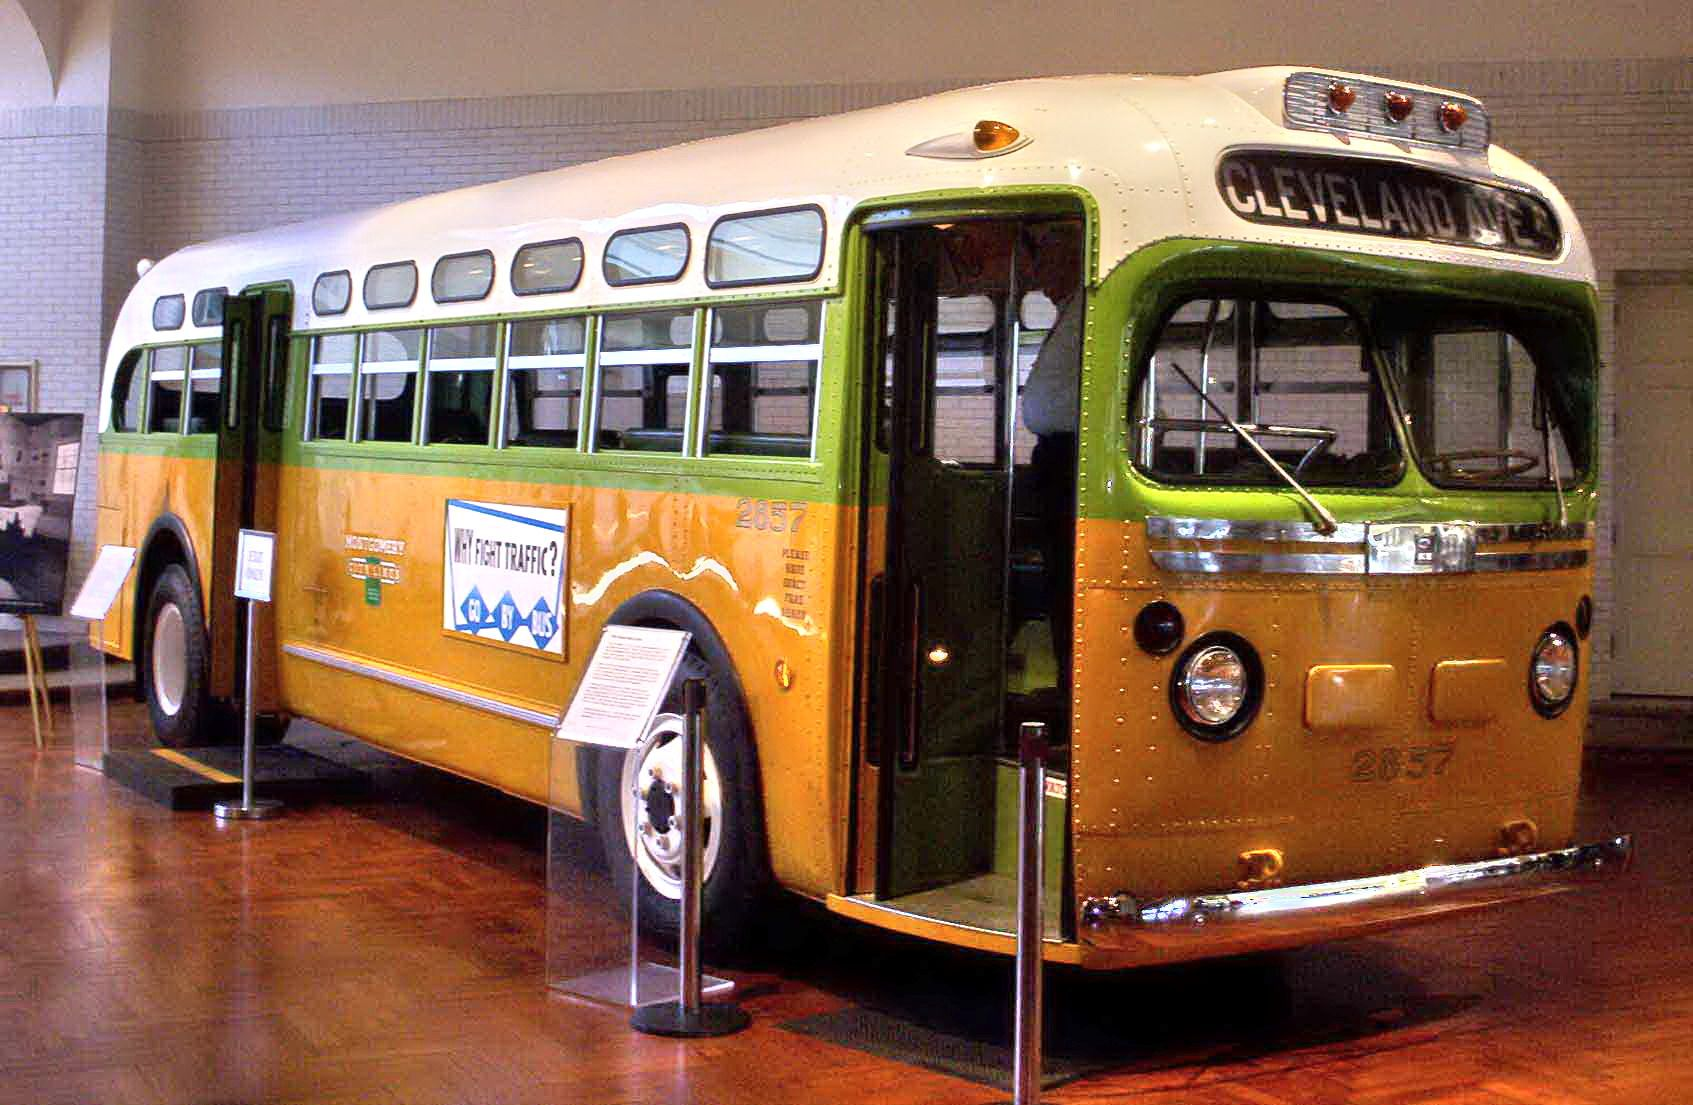 This bus represents the power of nonviolent protest. Rosa Parks may have been weary on a day she was asked to sit in the back of this bus, but her refusal to do so secured her place in history as an important leader for civil rights. We are grateful for her work for equal rights for all people.